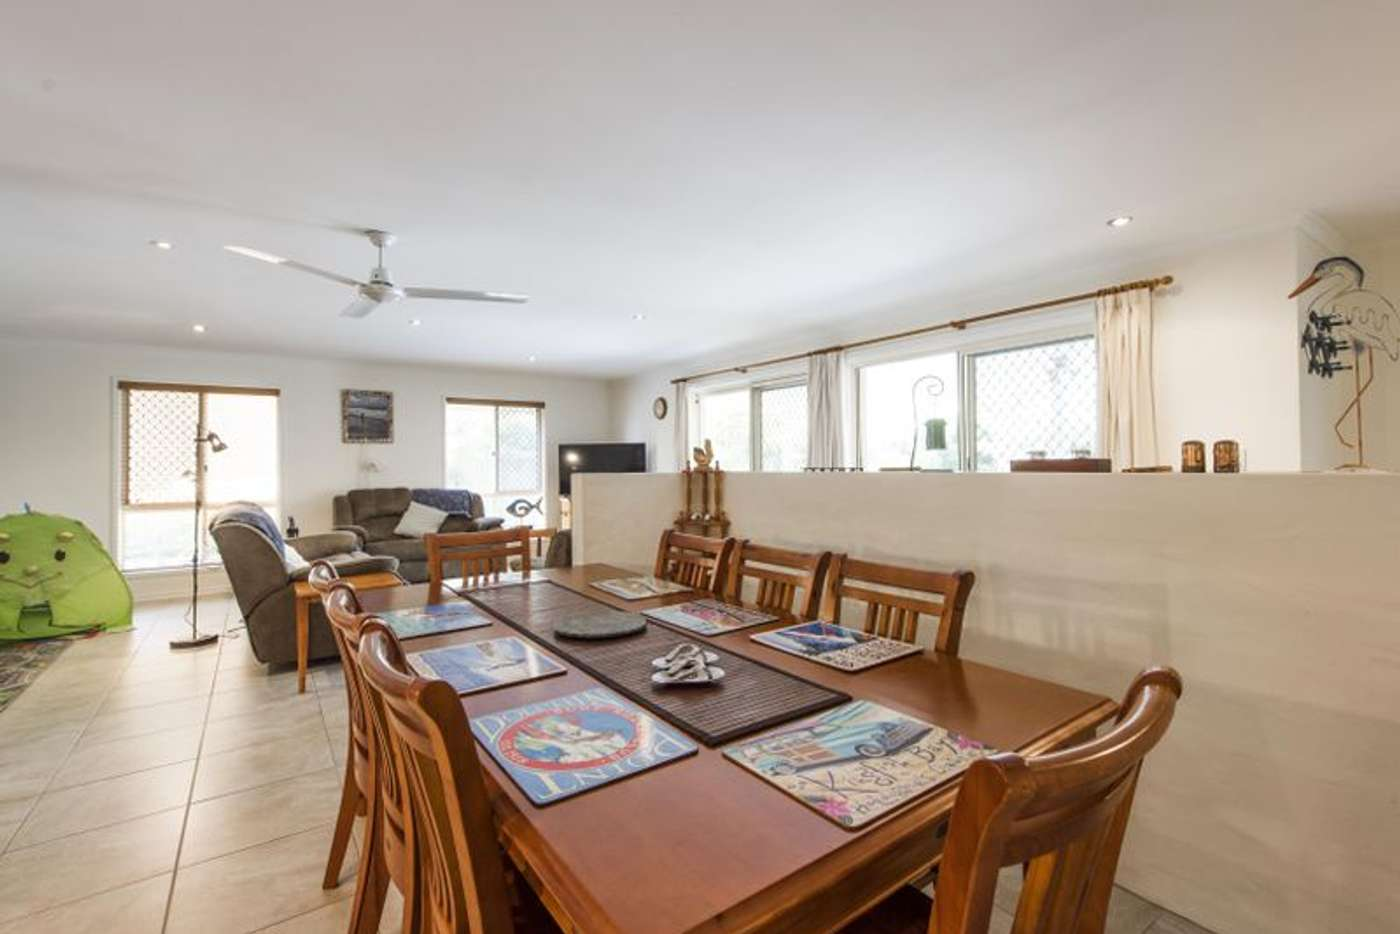 Seventh view of Homely house listing, 13 Young Street, Iluka NSW 2466